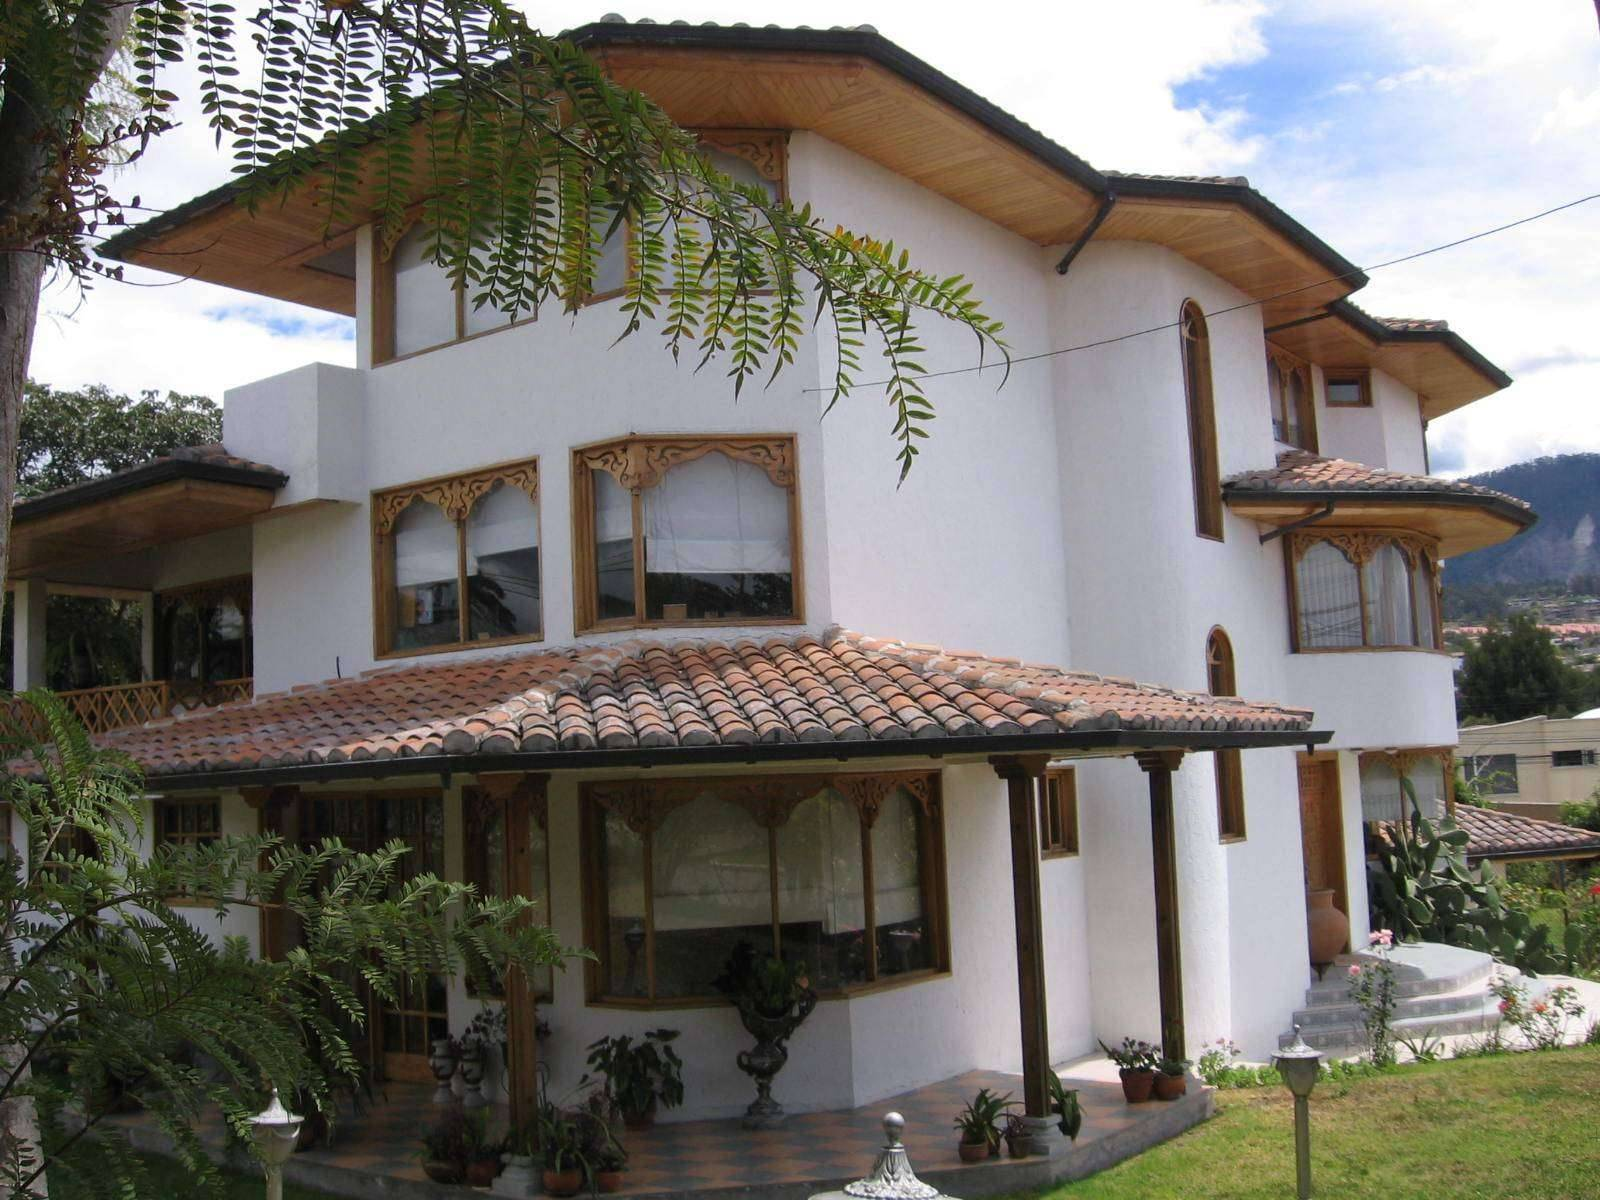 For Sale Wonderful Bizantine House For Sale In Cumbaya Ecuador  # Muebles Cumbaya Ecuador